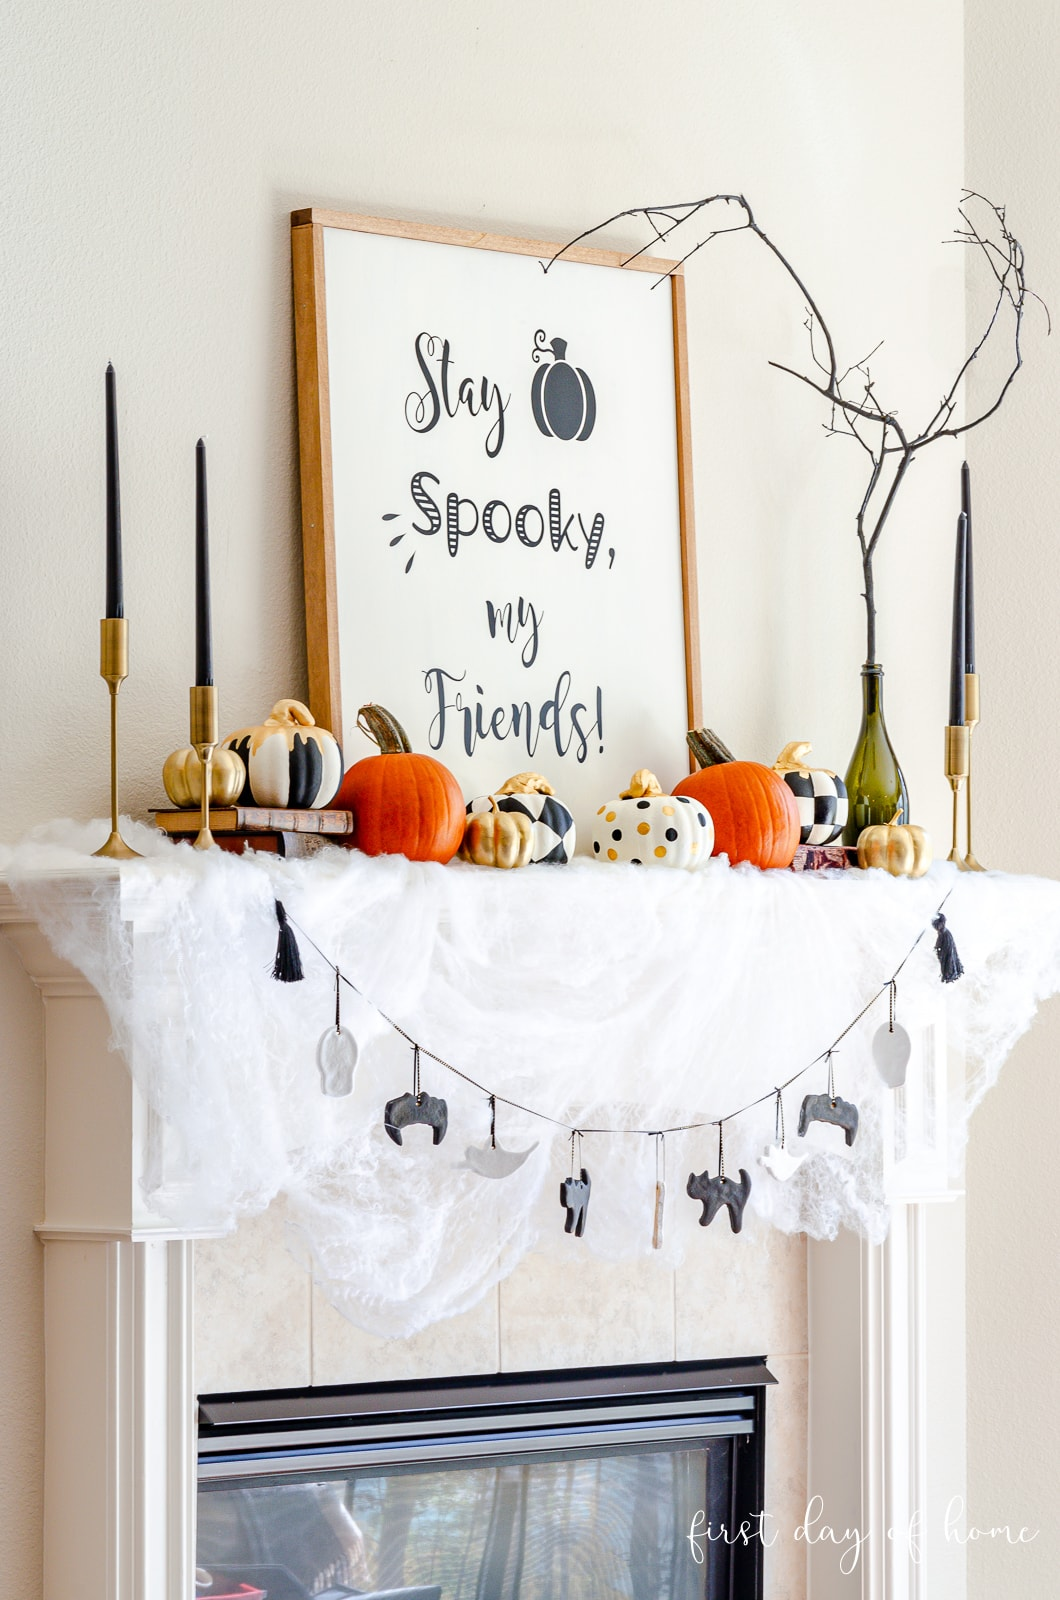 Halloween mantel decor with mantel scarf, garland, taper candles, painted pumpkins and a farmhouse sign